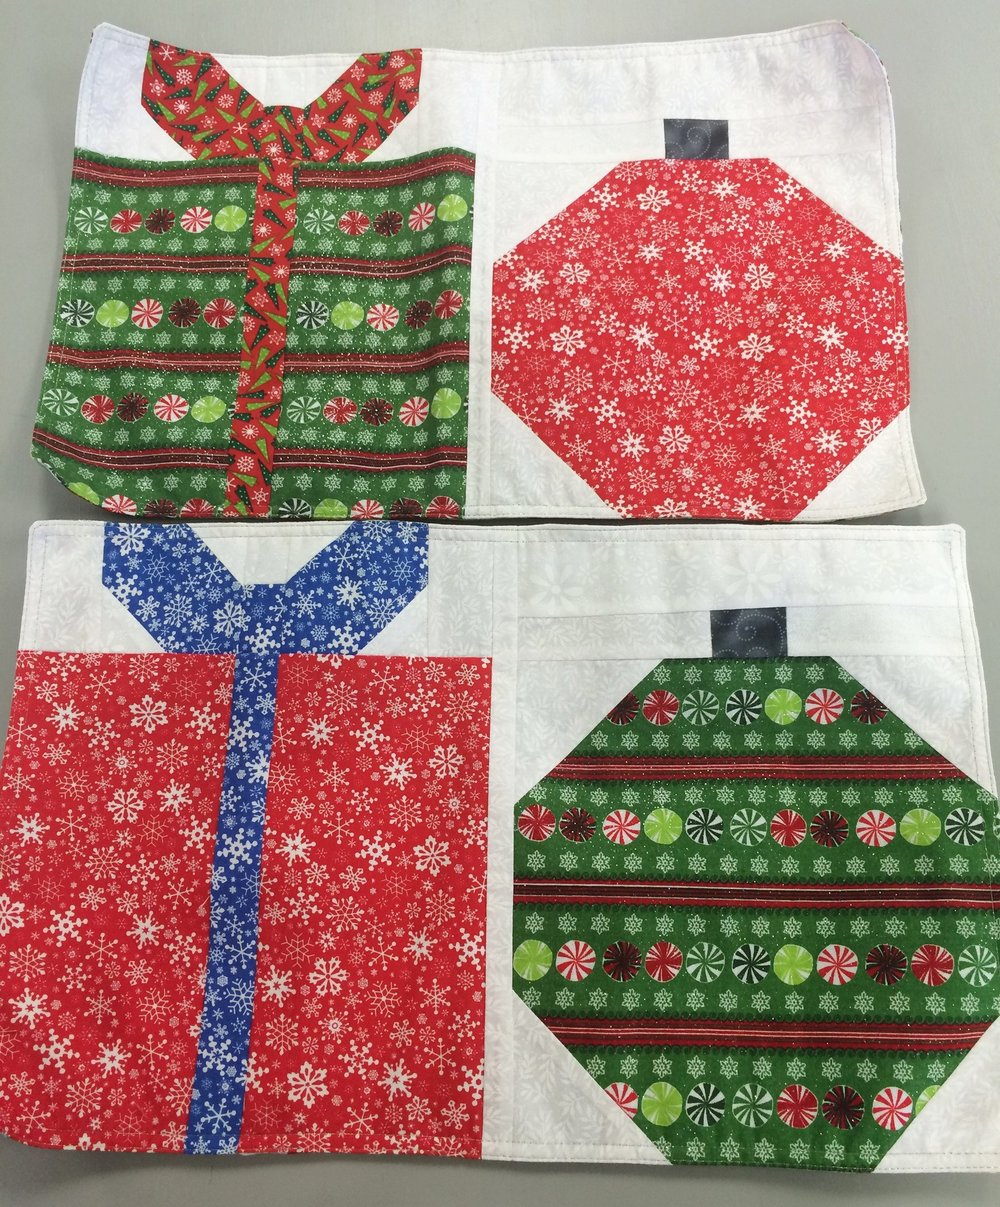 oct 29th sewing for christmas placemats napkins - Christmas Placemats And Napkins